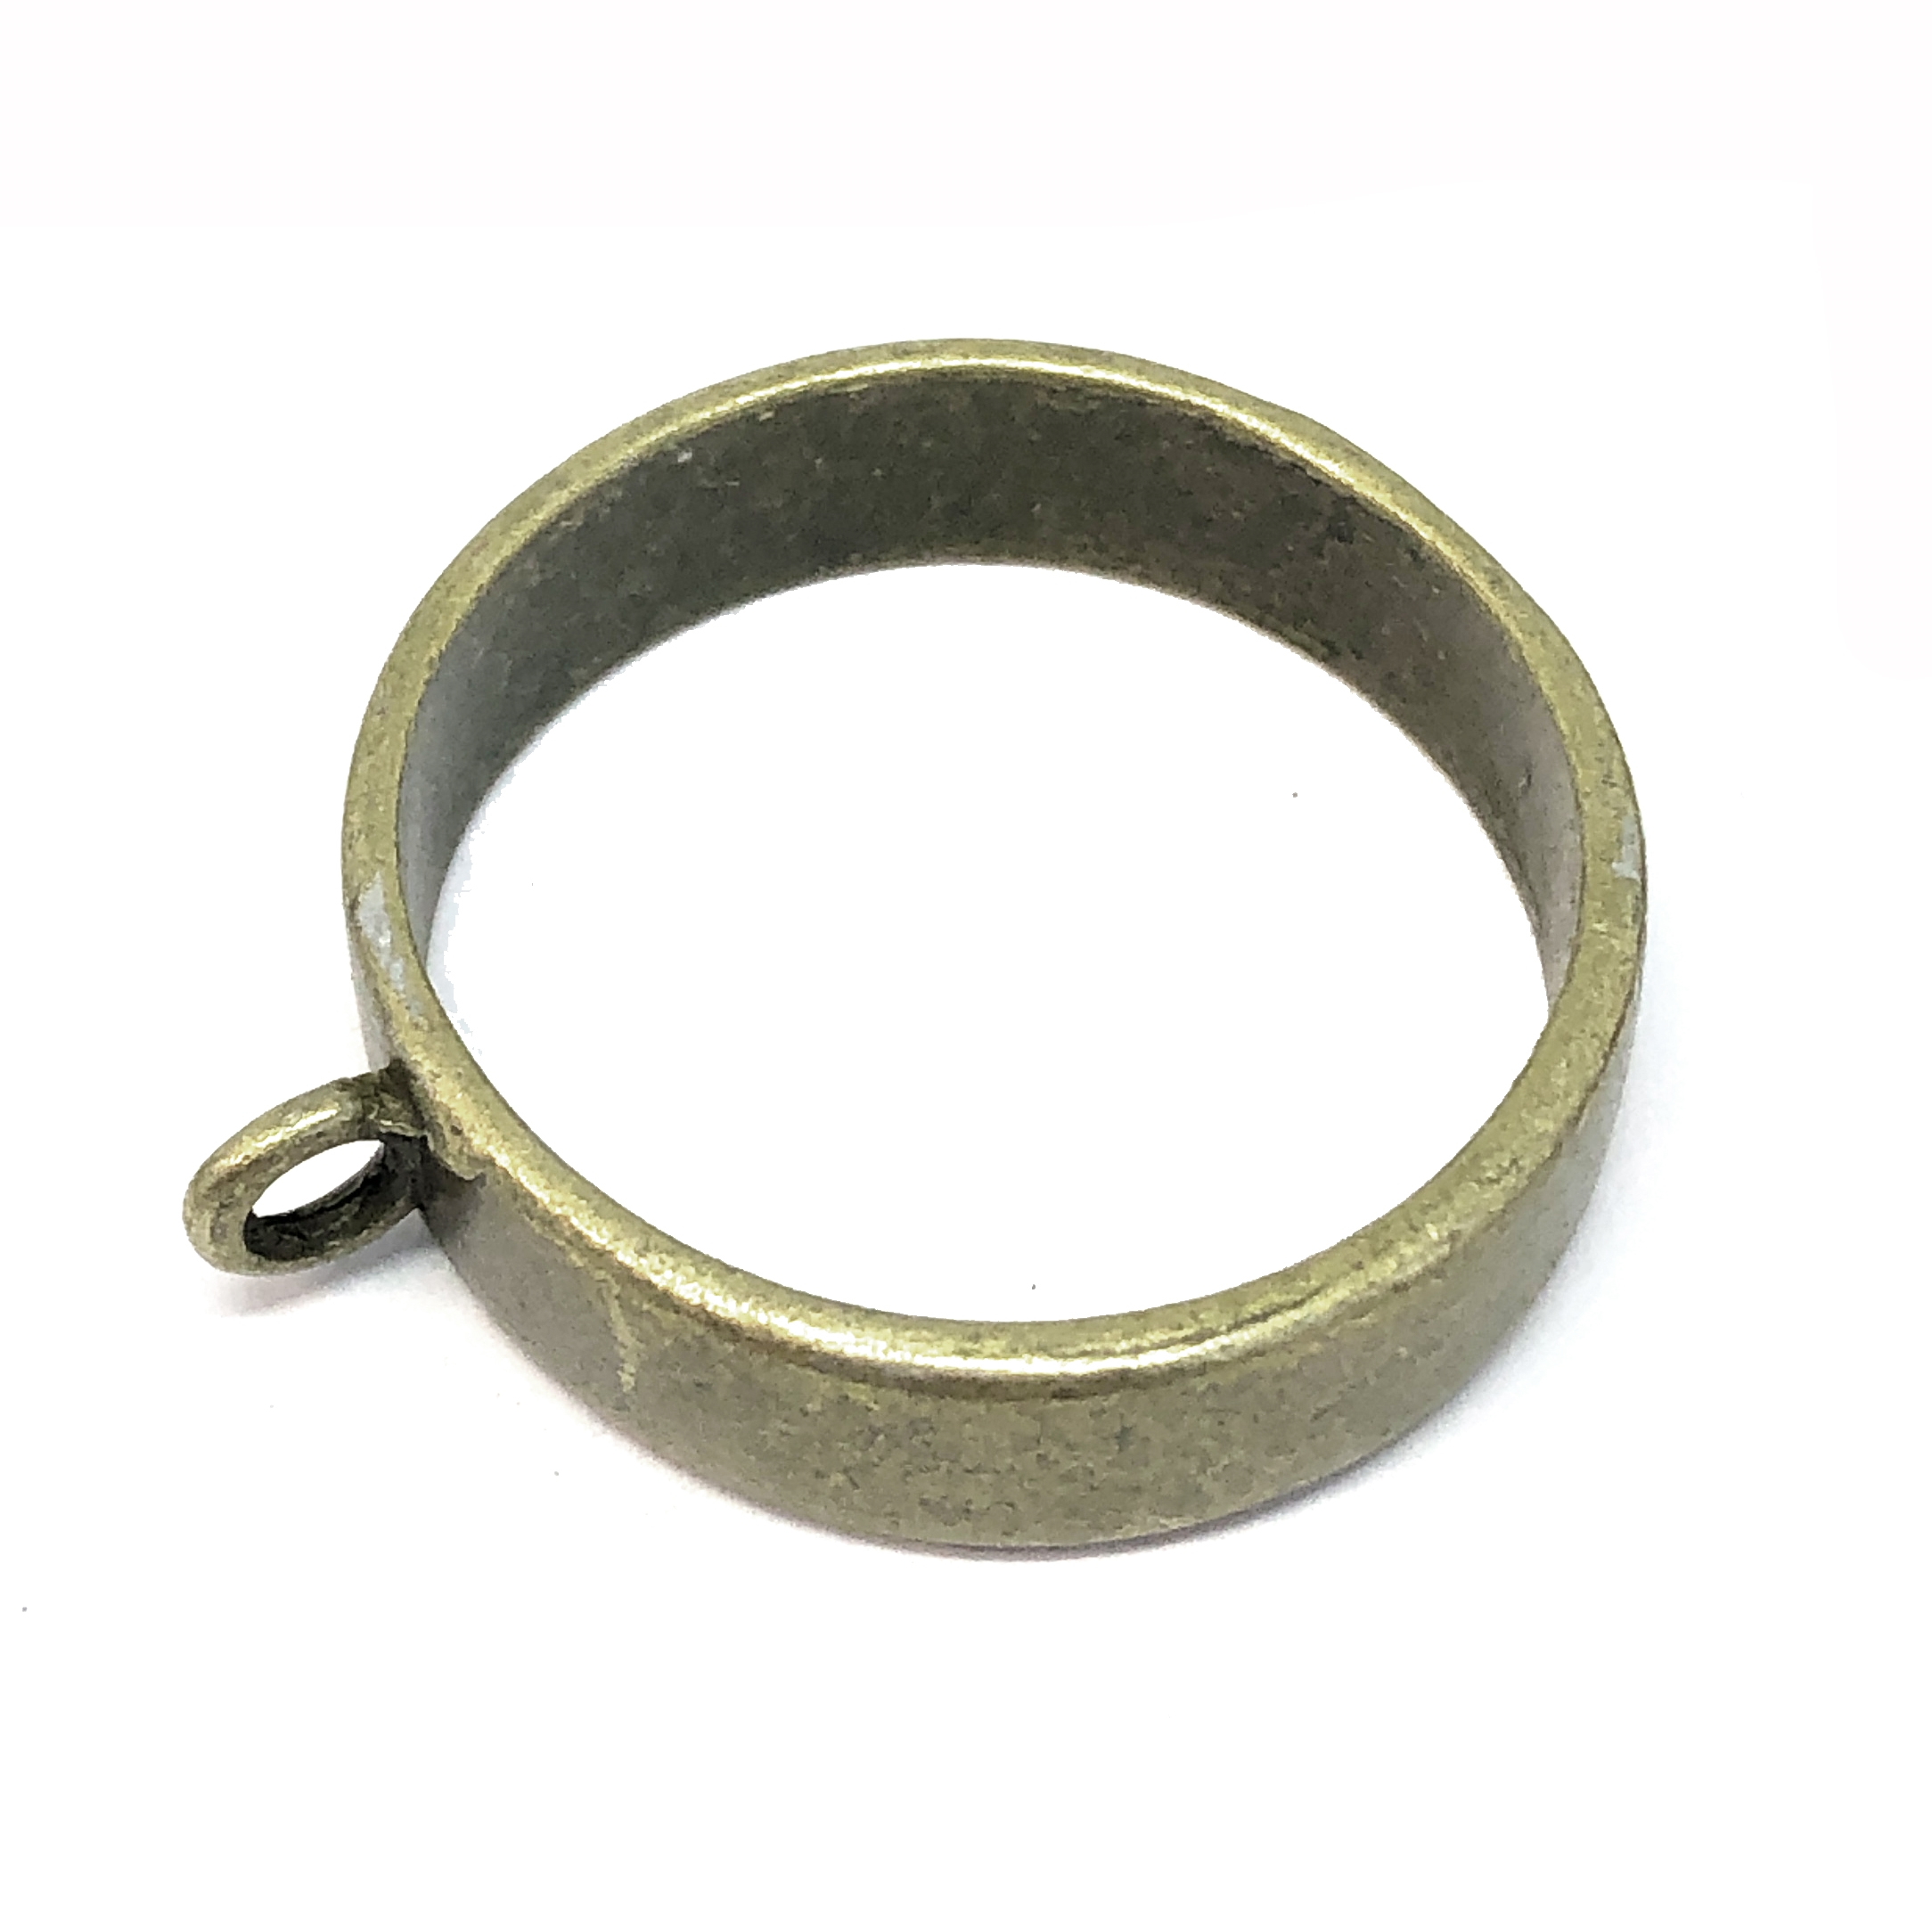 backless bezel, zinc alloy, antique bronze, 08896, vintage jewelry supplies, jewelry making supplies, deep well bezel, bsue boutiques, nickel free, US made, 25mm mount, jewelry findings,